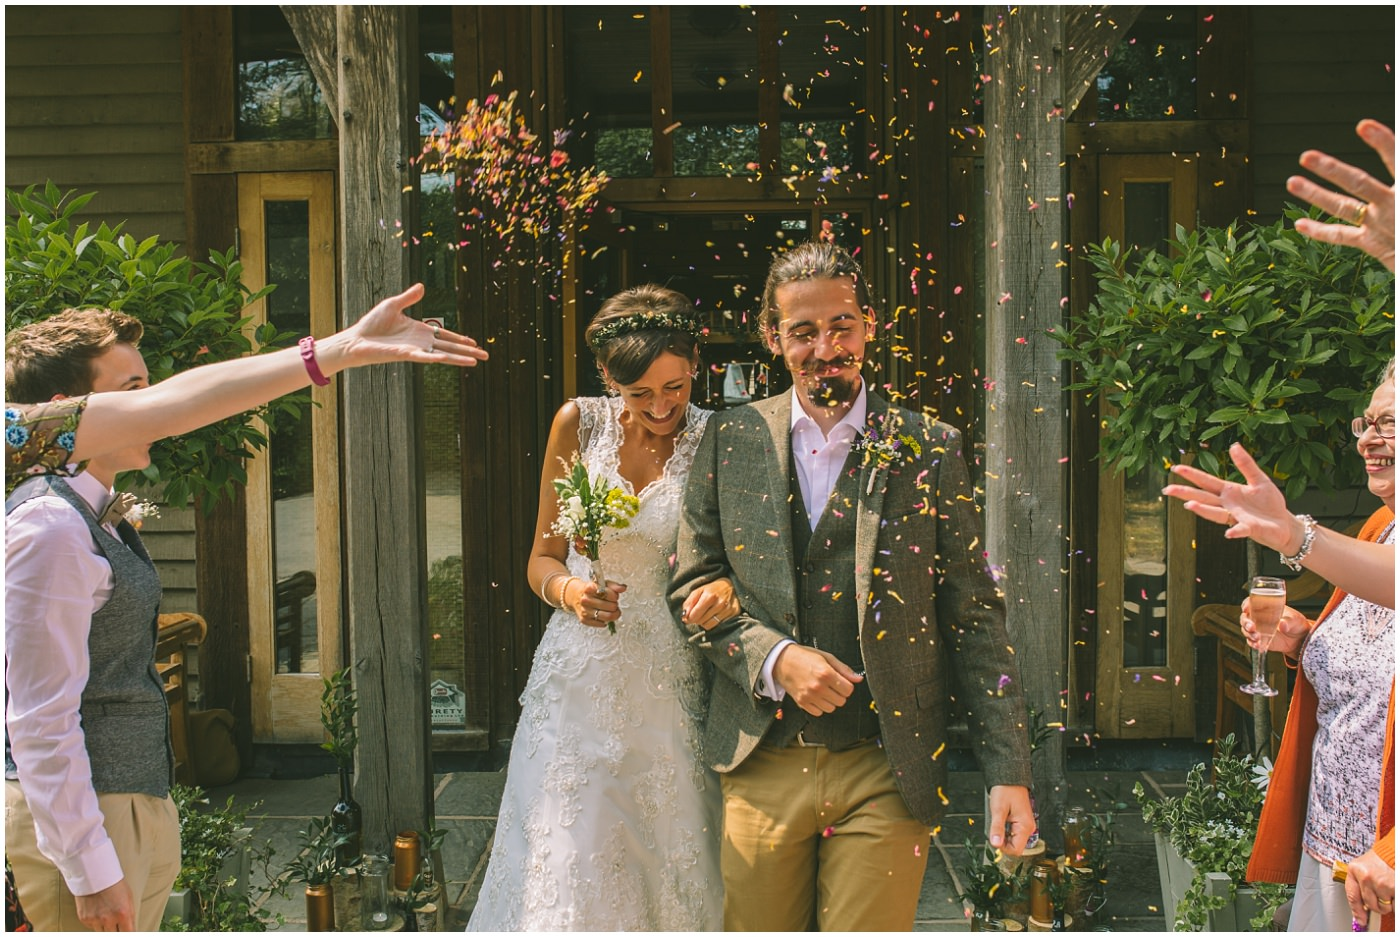 Bride and groom walk arm in arm through confetti